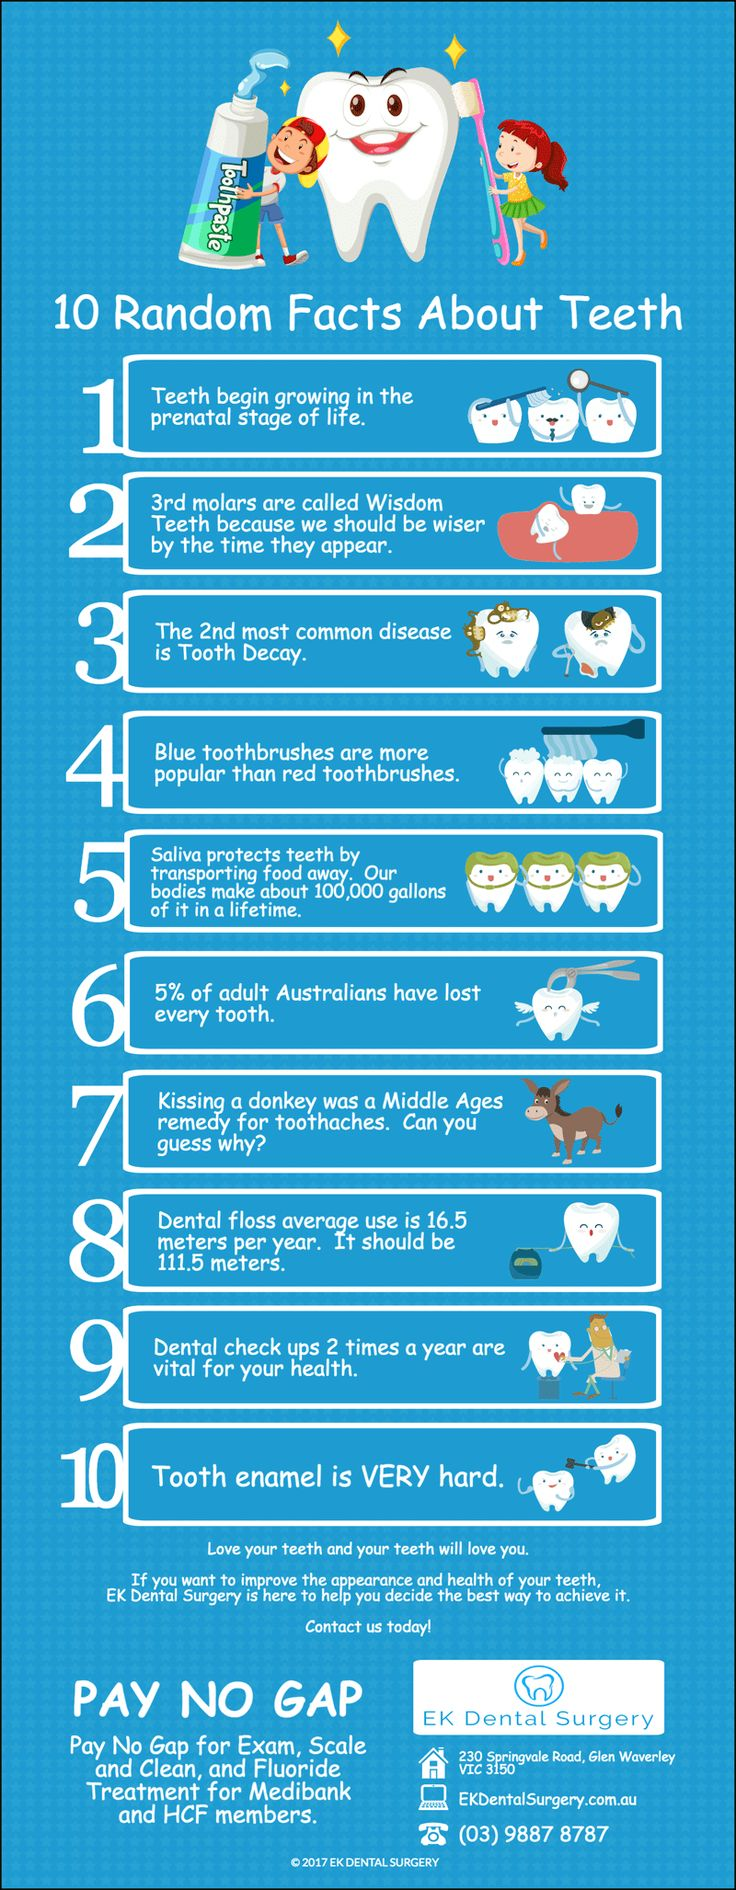 10 Random Facts About Teeth ekdentalsurgery.com.au